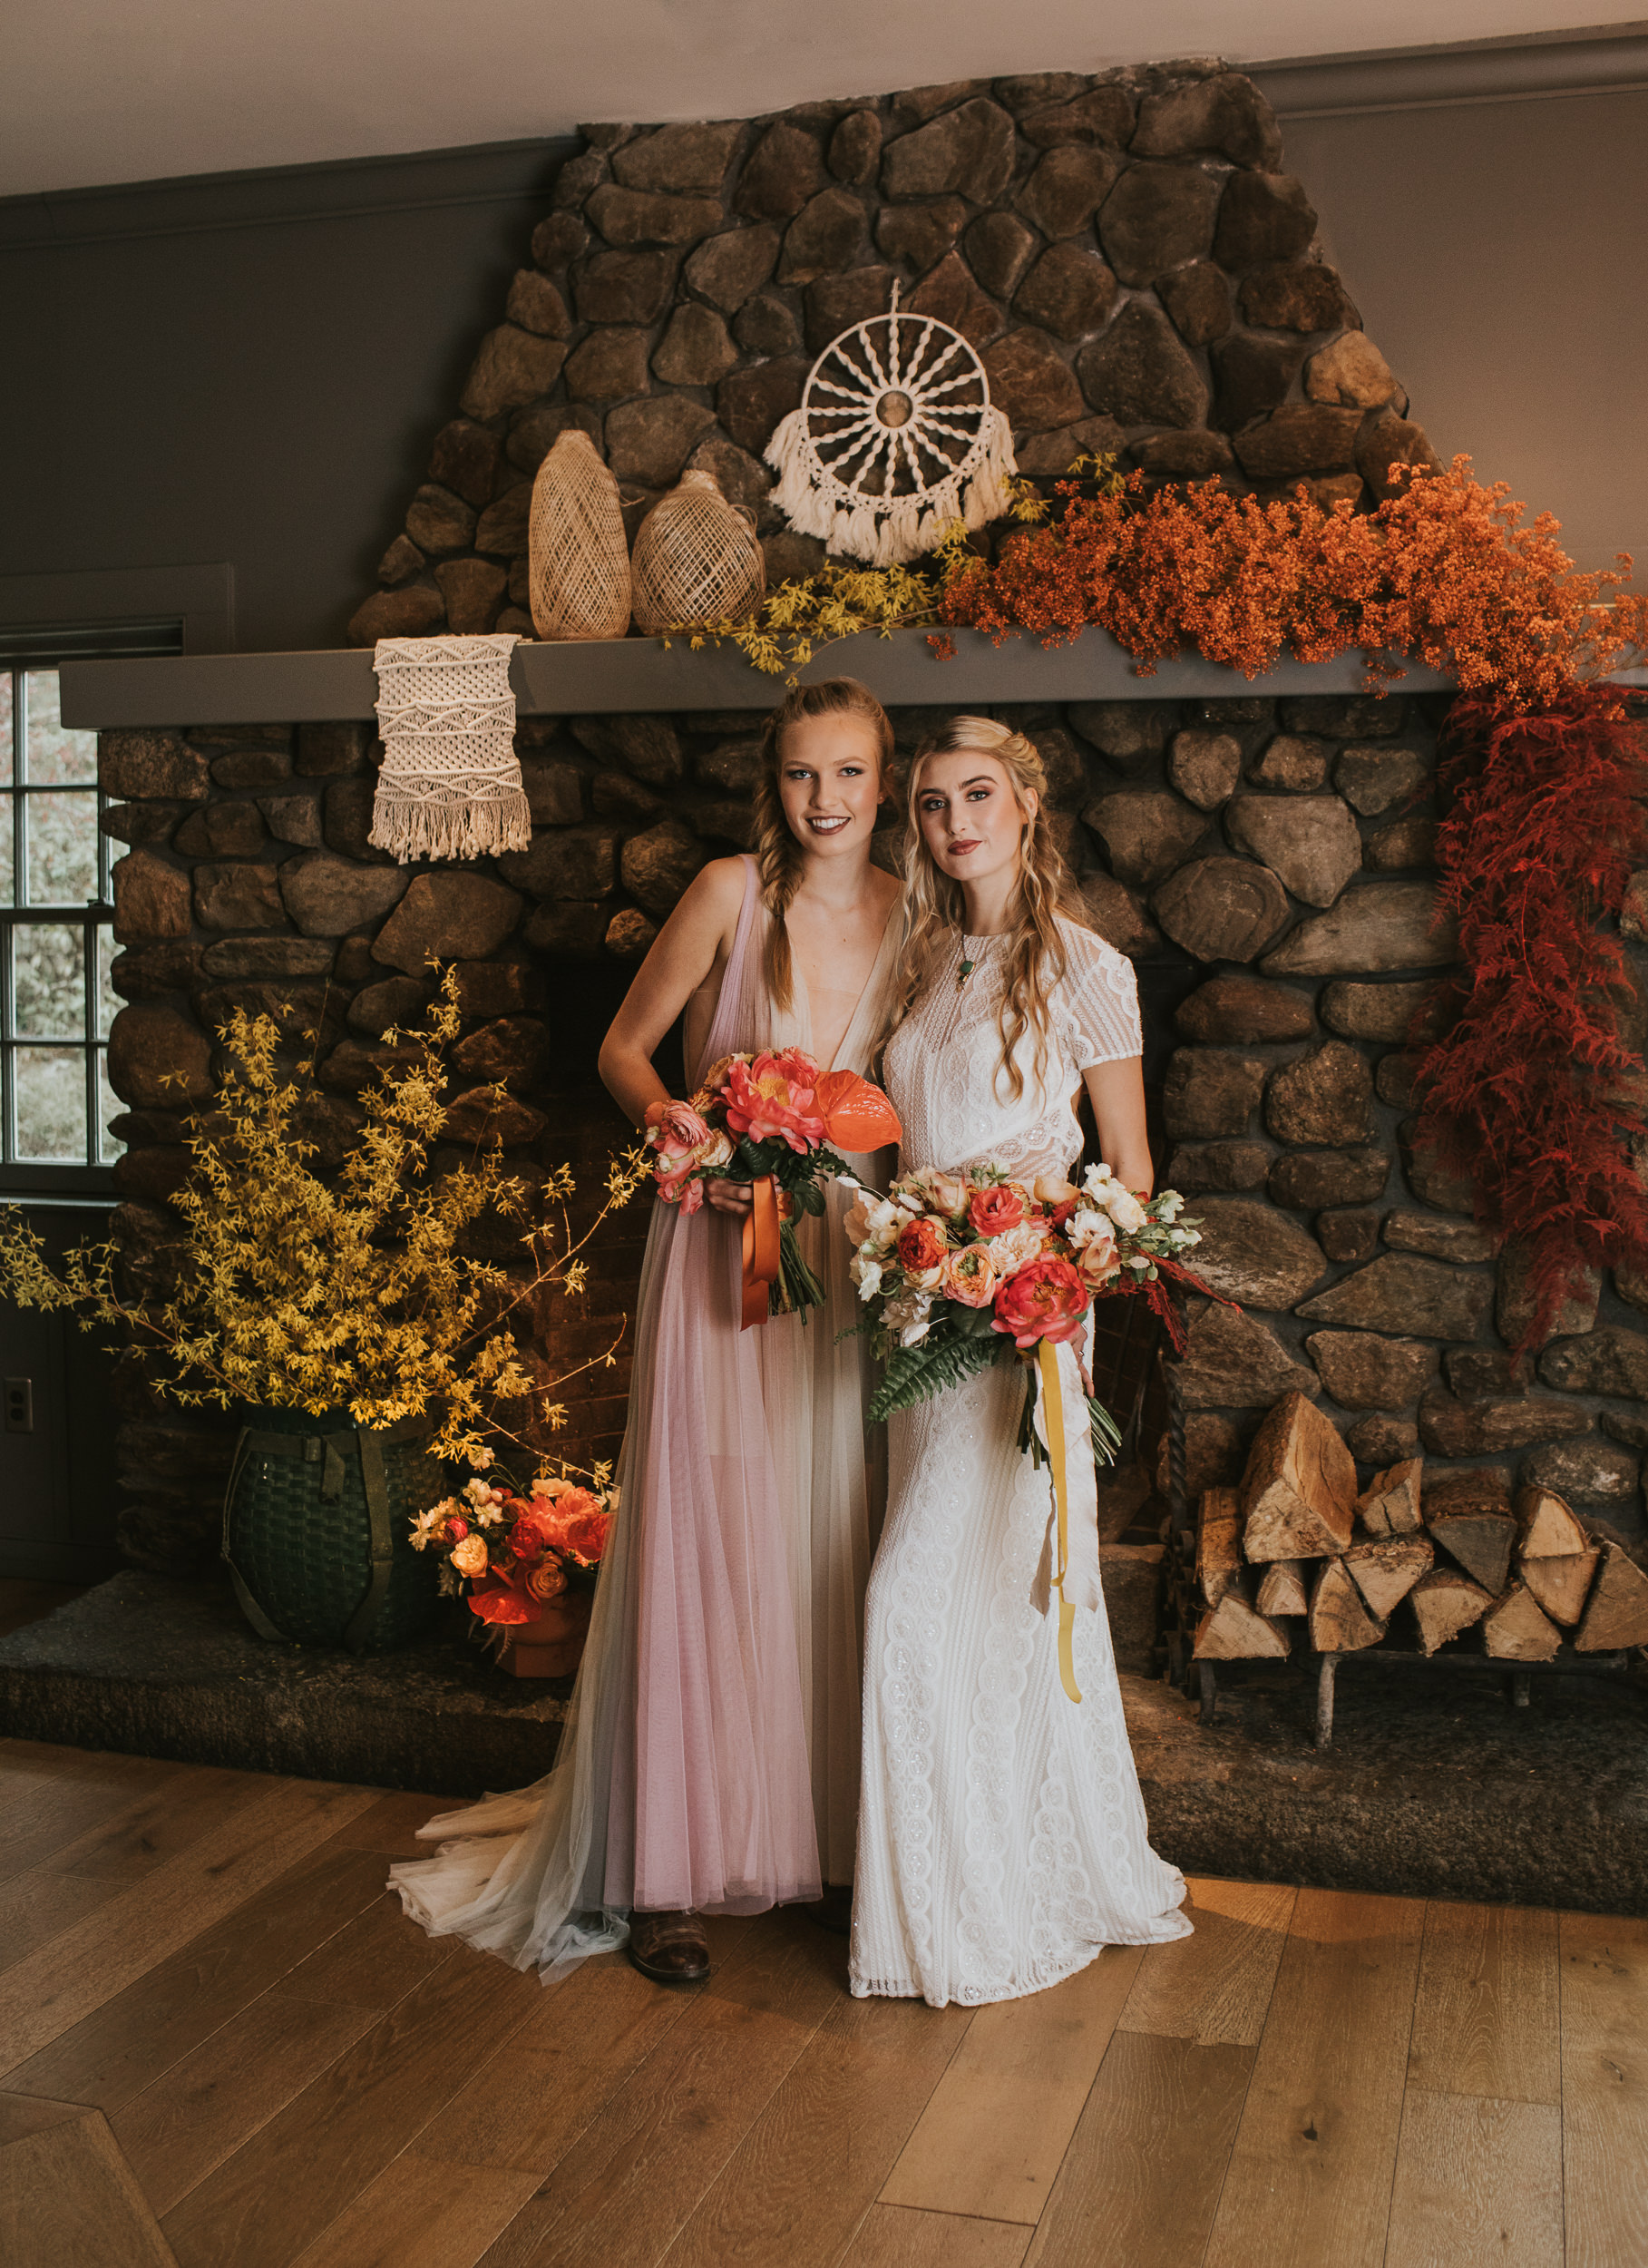 Walkers Maine Wedding Styled Photoshoot Minka Flowers © Heidi Kirn Photography 451142-Edit.jpg